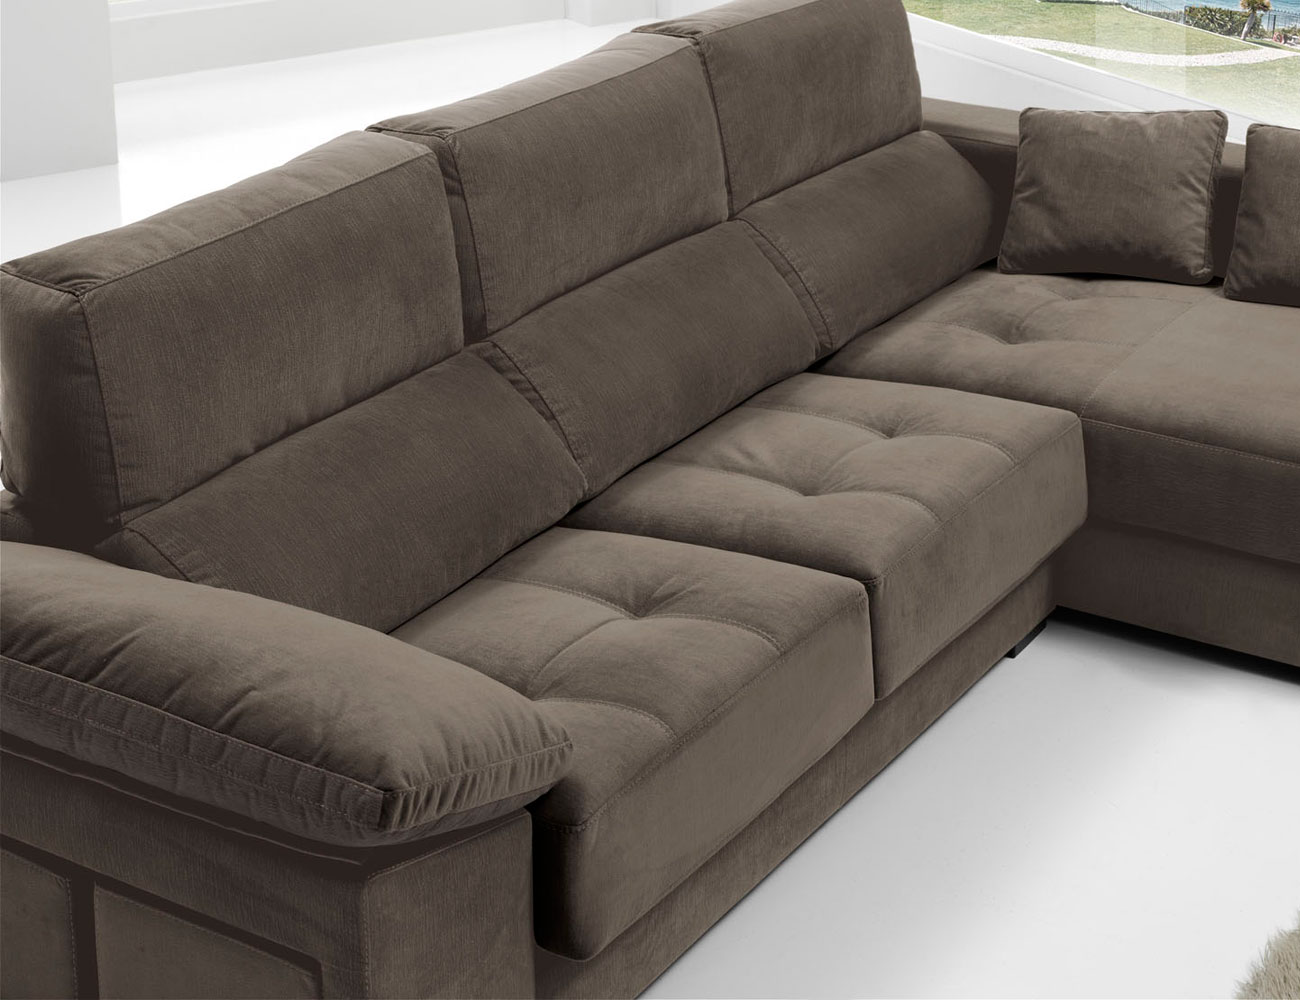 Sofa chaiselongue anti manchas bering pouf 219